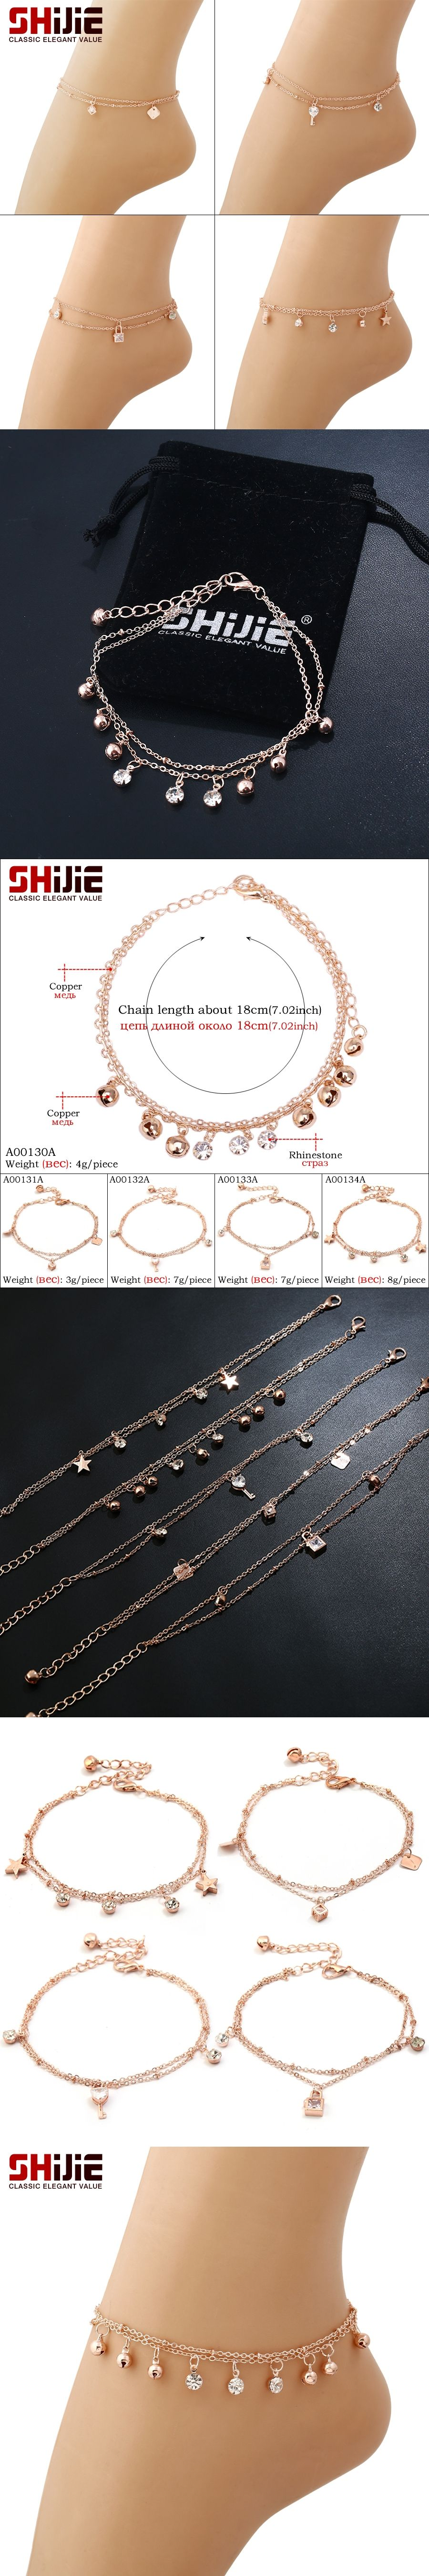 for leg you bracelet chain jewelry ankle anklet if bride crystal charming girl pin women foot woman